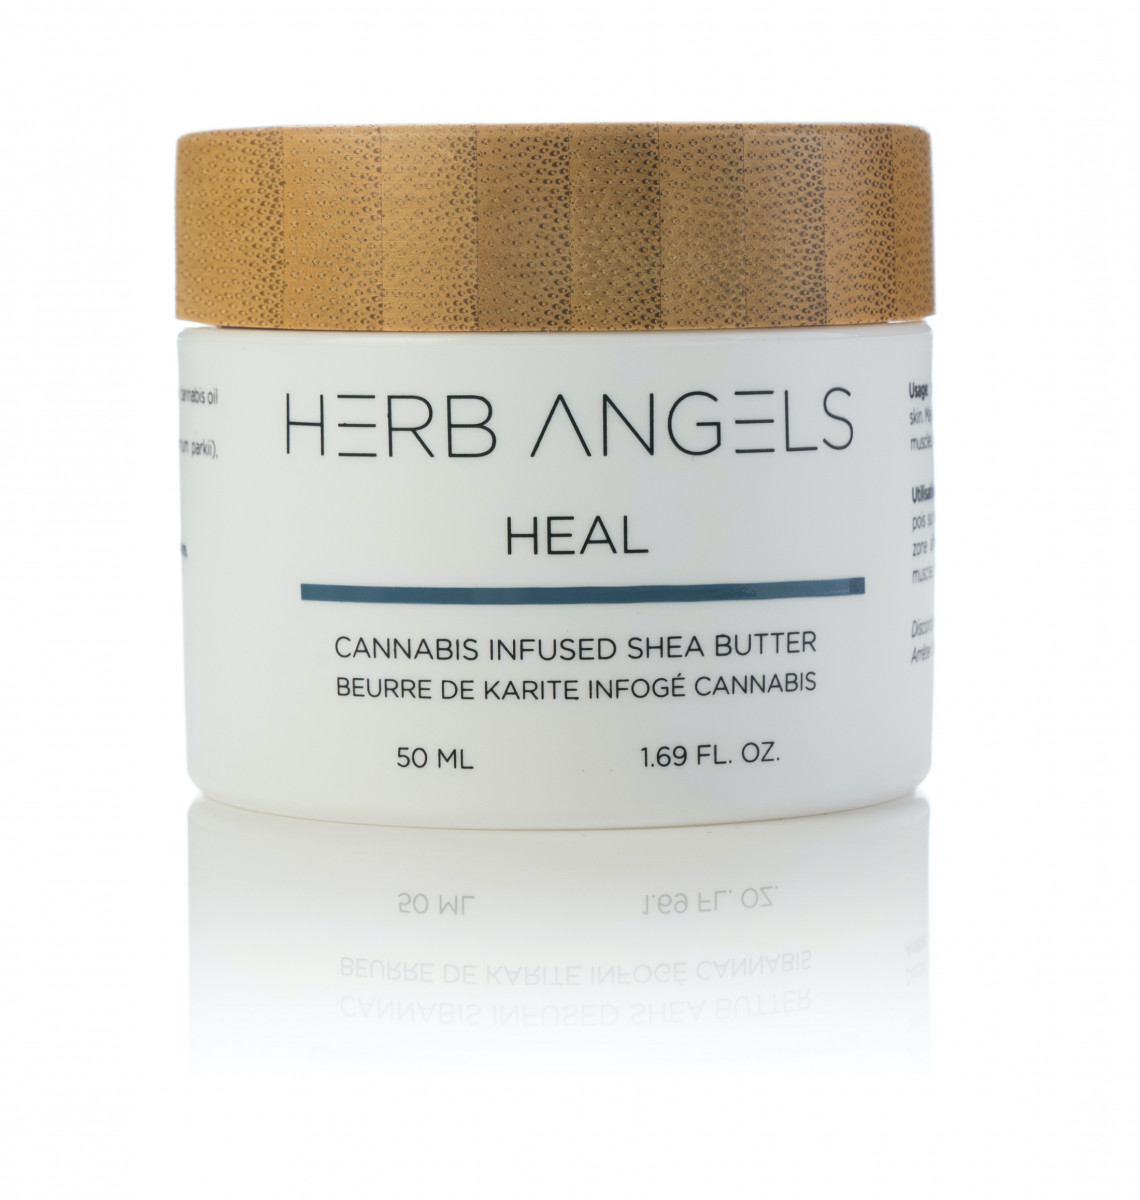 HEAL Topical by Herb Angels